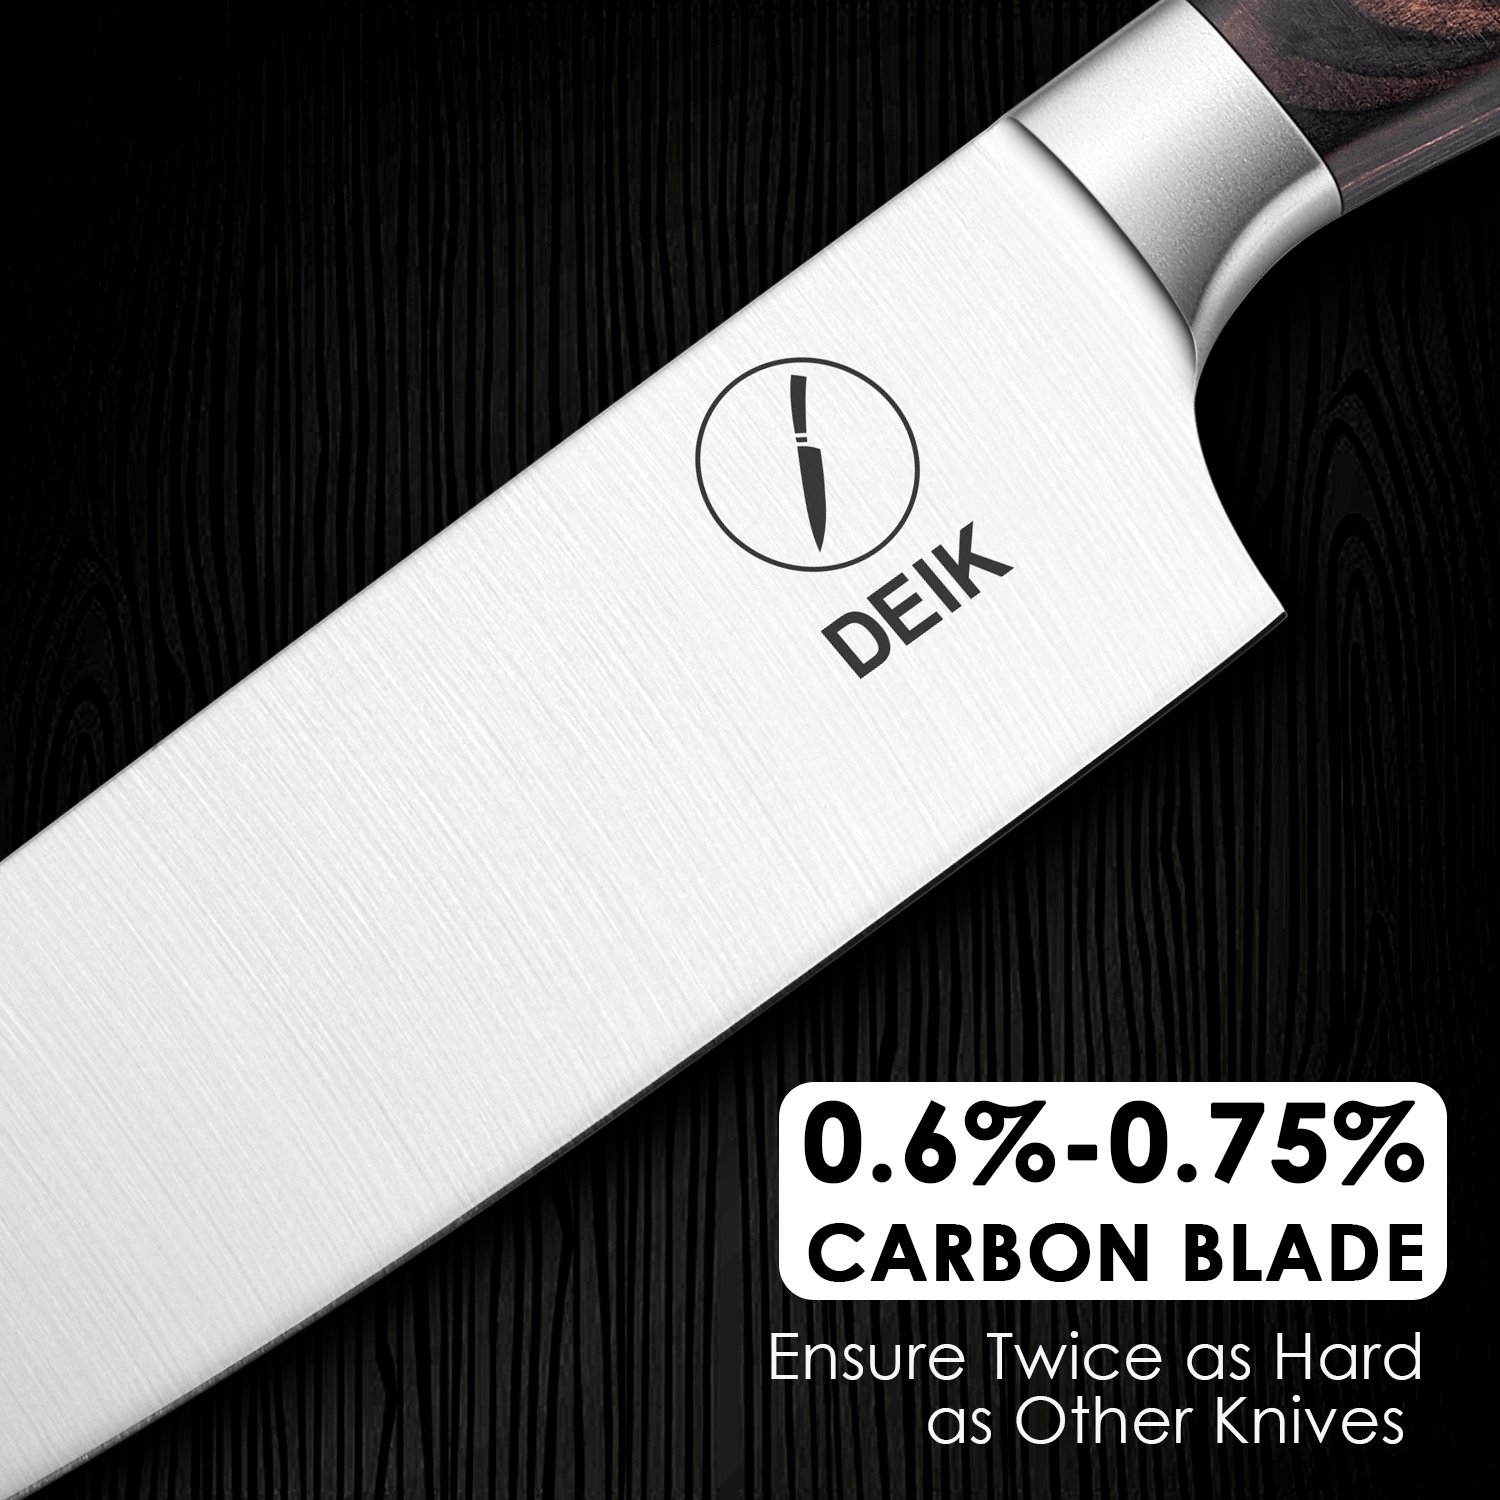 Deik Chef Knife, 8 Inch Kitchen Knife with 1.4116 Imported Stainless Steel, Professional Grade Balance and Super Sharp with Ergnonomic Classy Wooden Handle by Deik (Image #3)